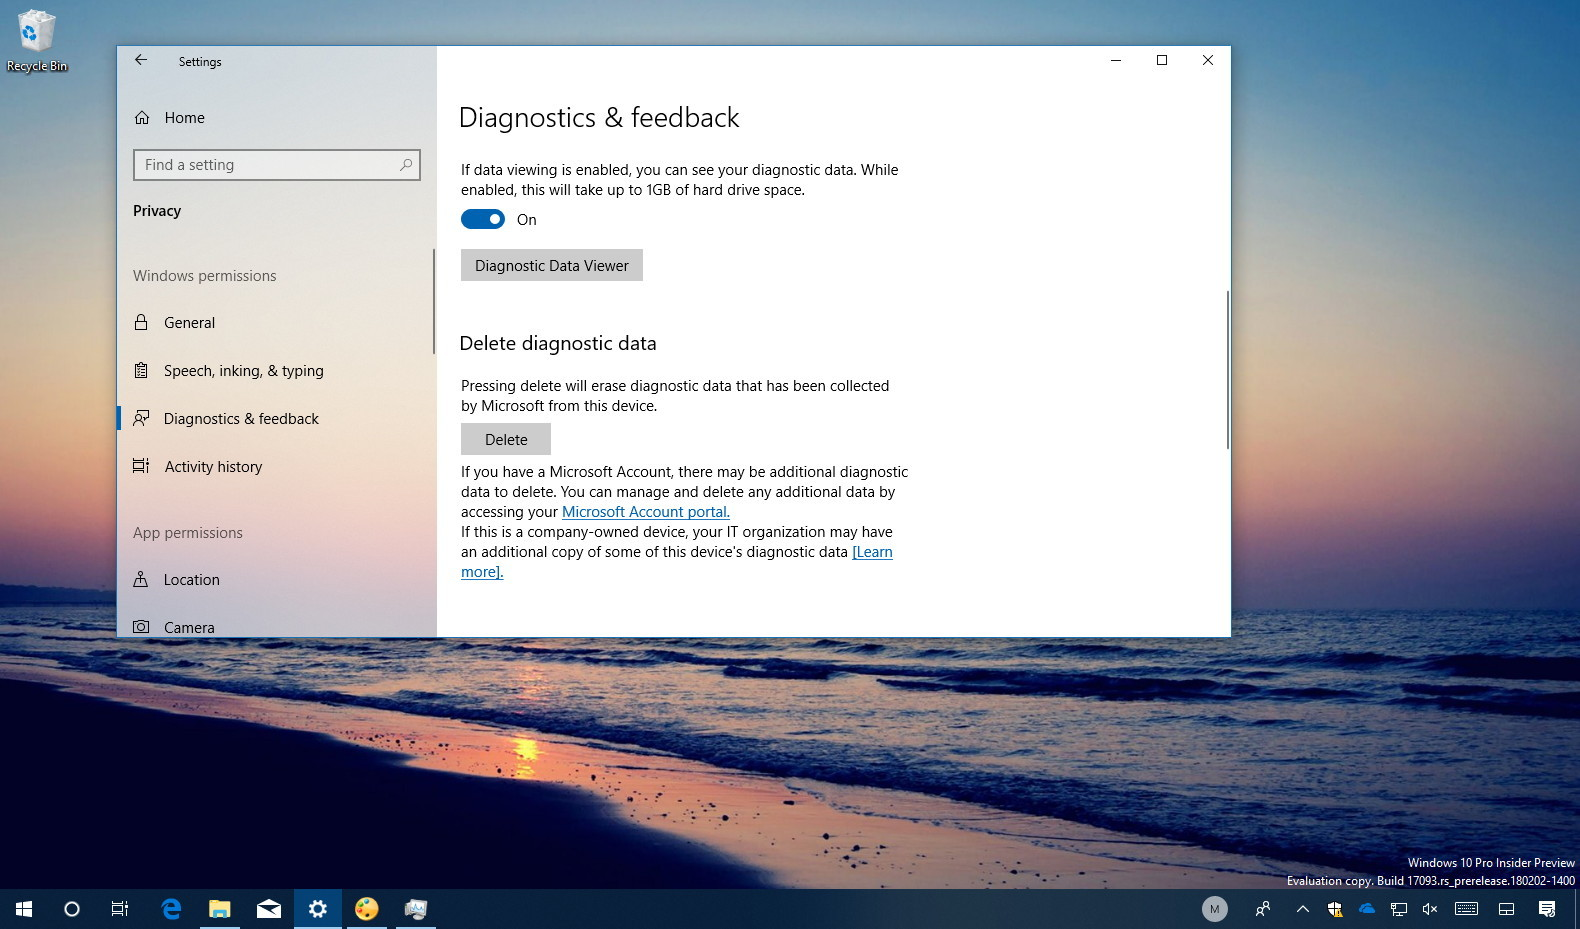 Deleting diagnostic data on Windows 10